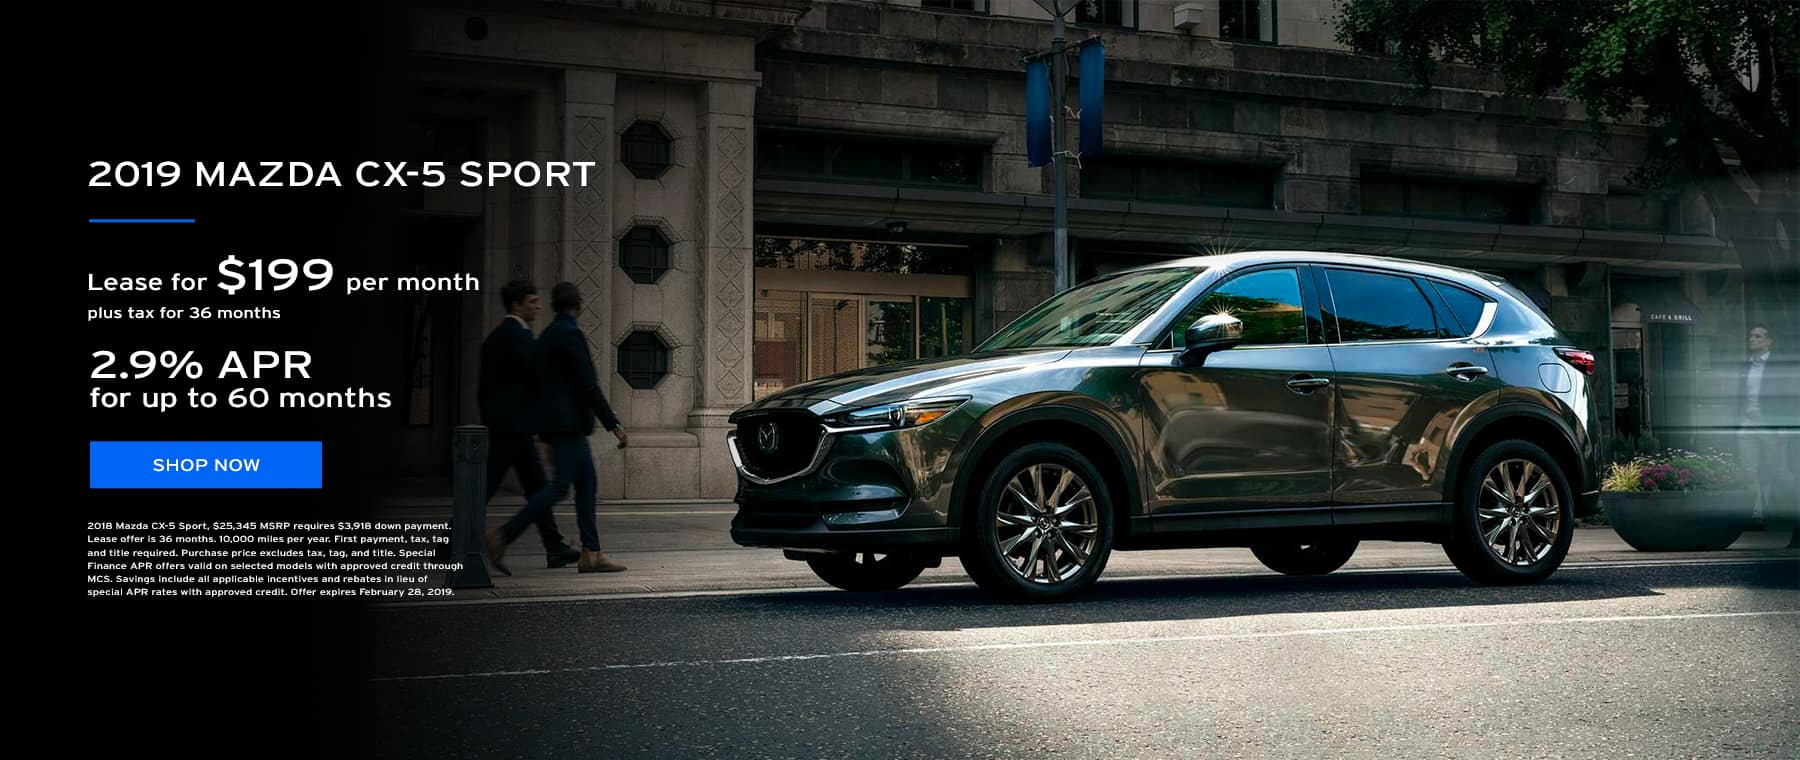 CX-5 Offers